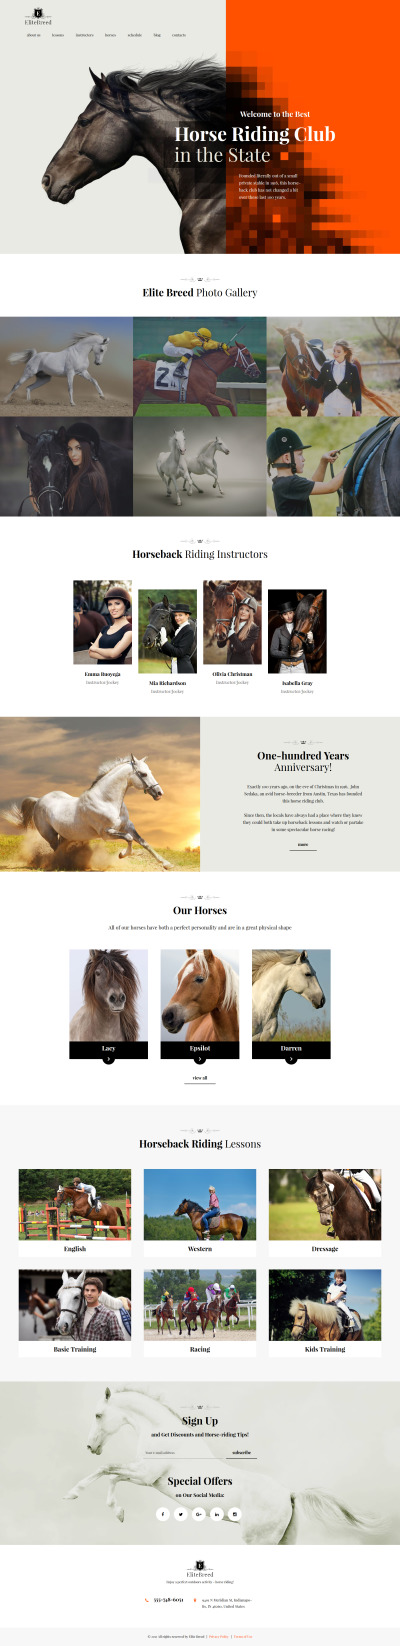 Elite Breed - Equestrian & Horse Riding Club